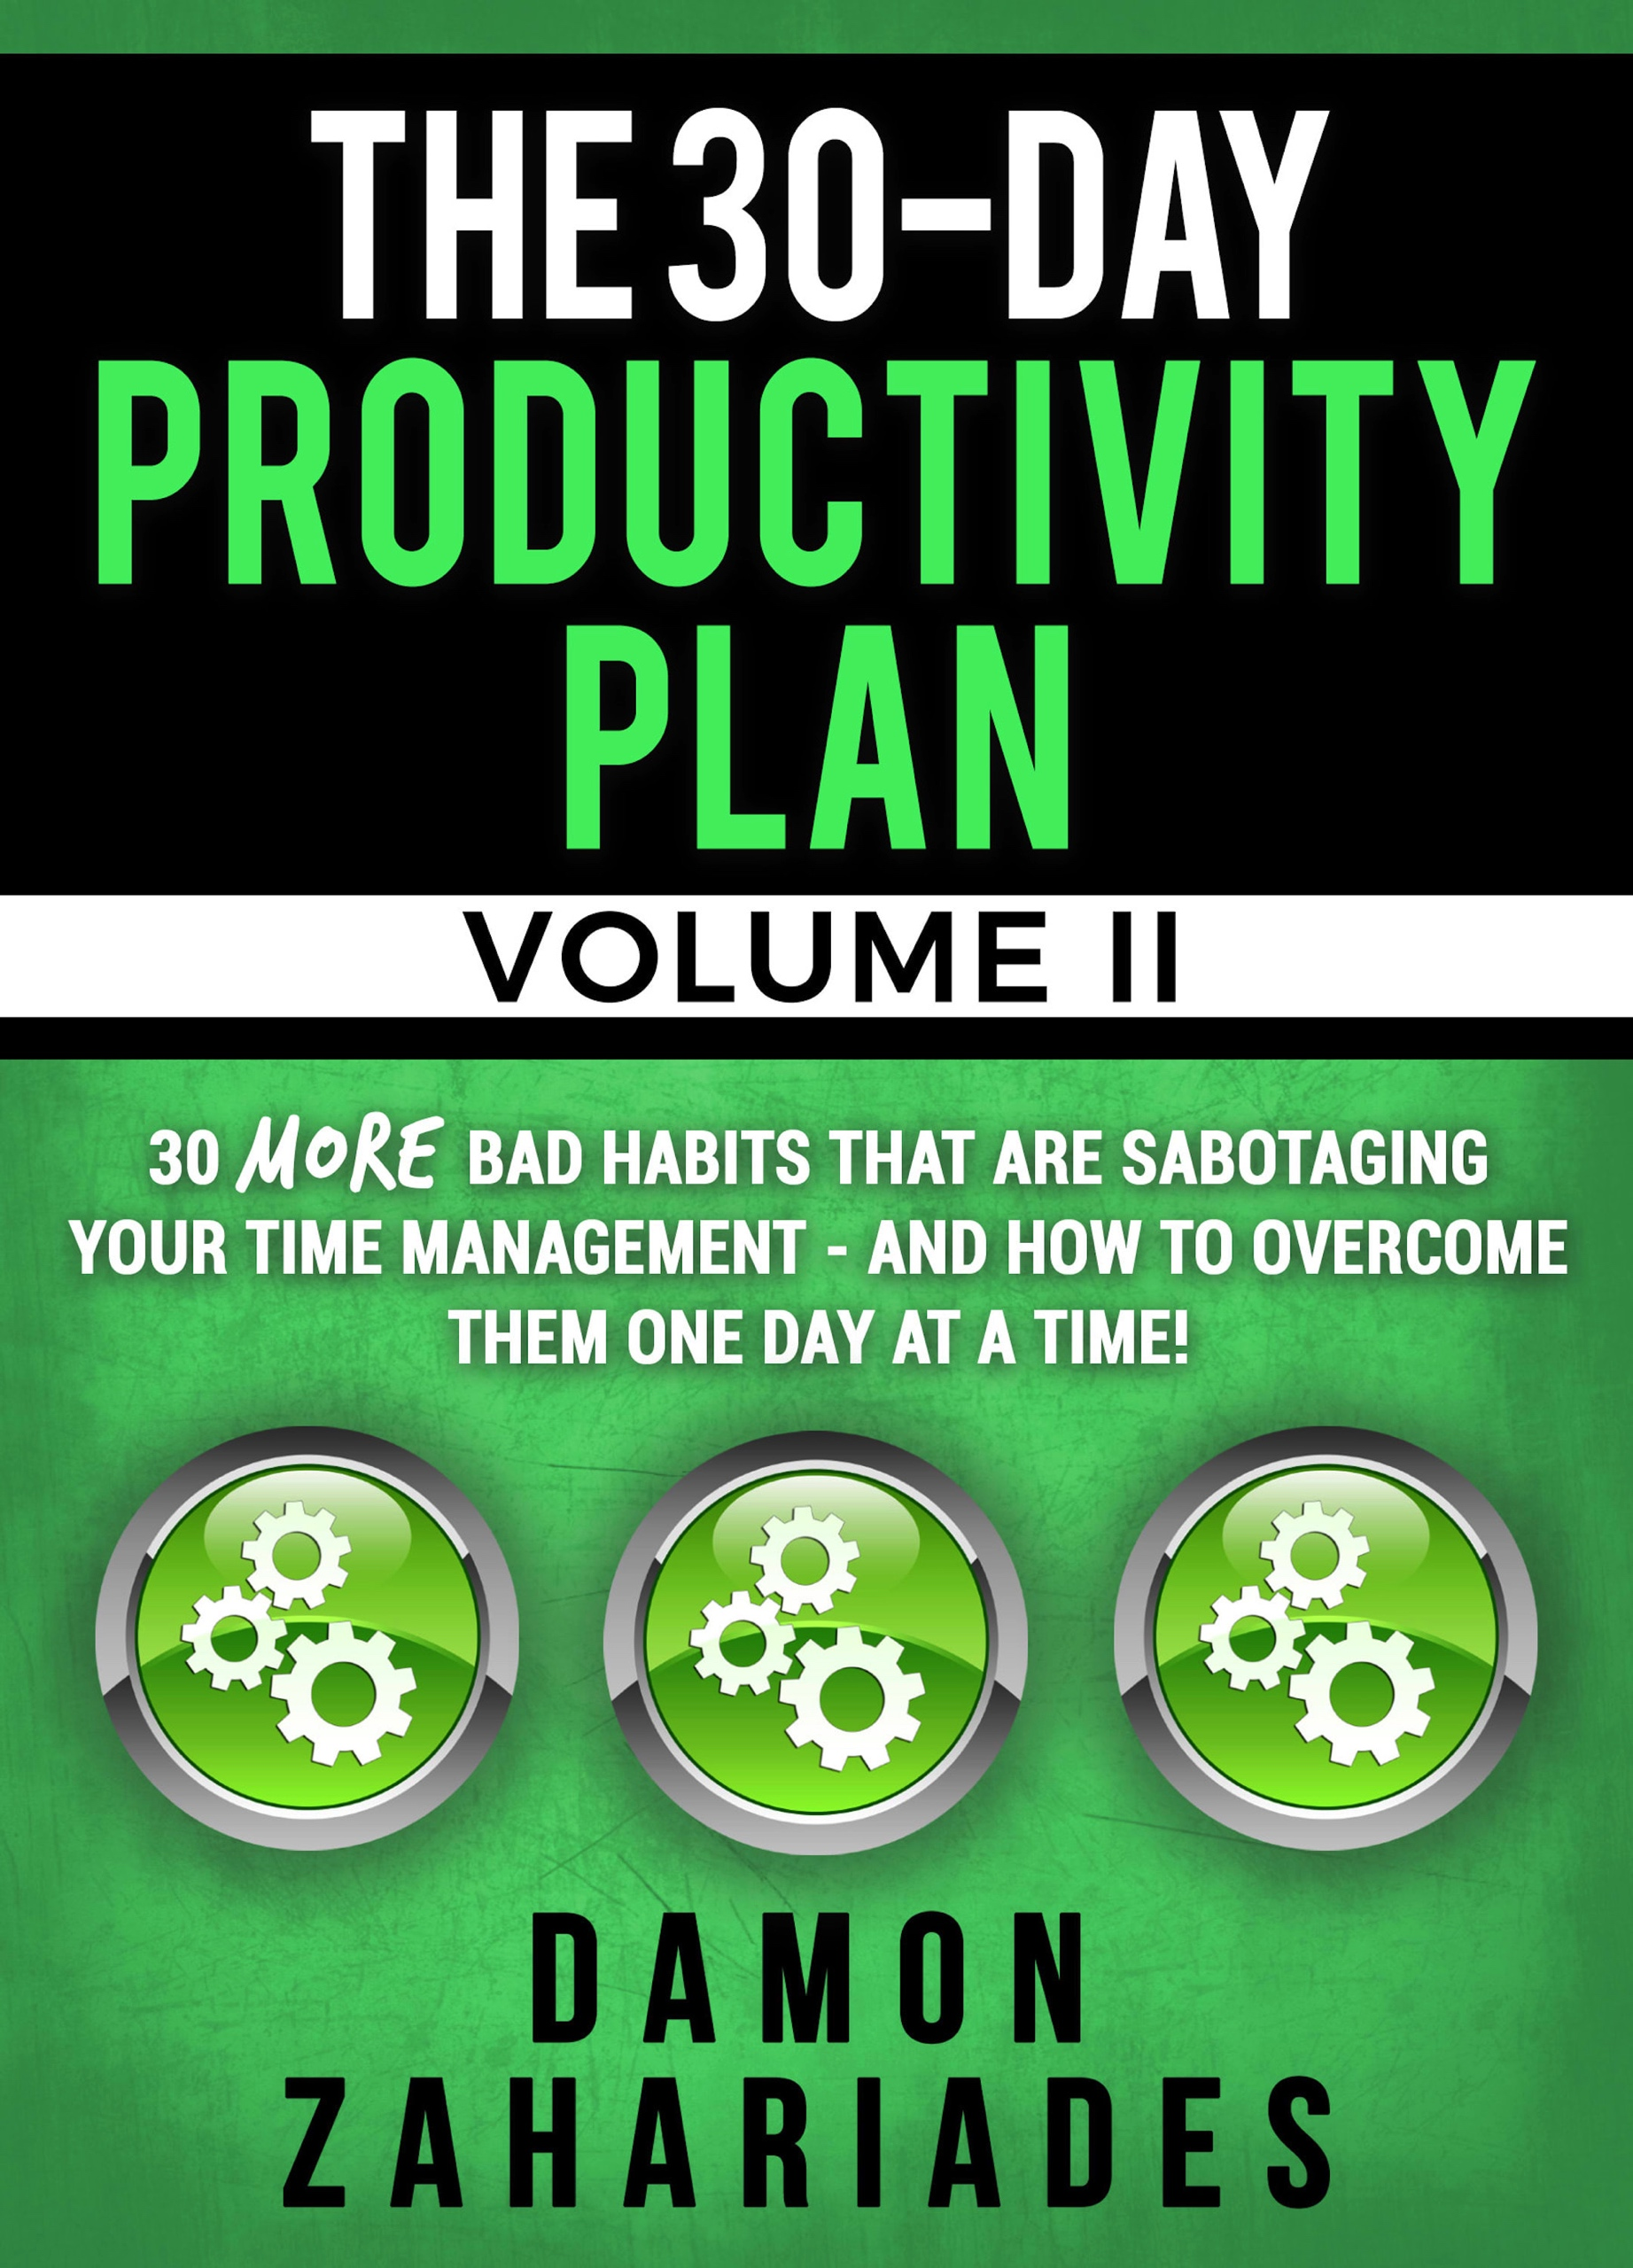 The 30-Day Productivity Plan - VOLUME II: 30 MORE Bad Habits That Are Sabotaging Your Time Management - And How To Overcome Them One Day At A Time!